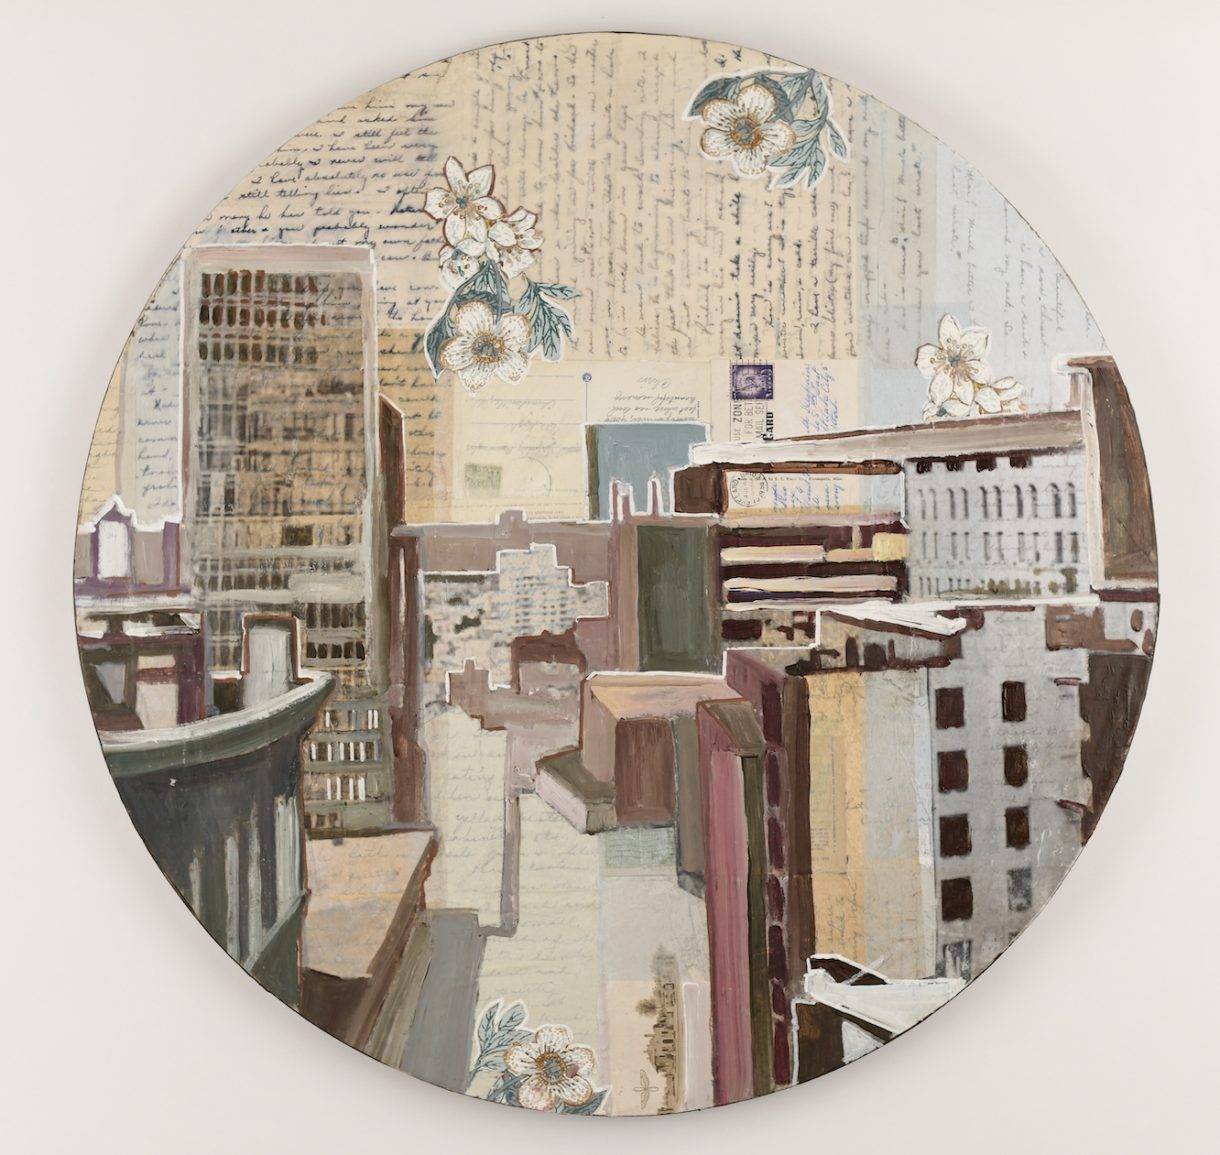 cityscape in the round from above